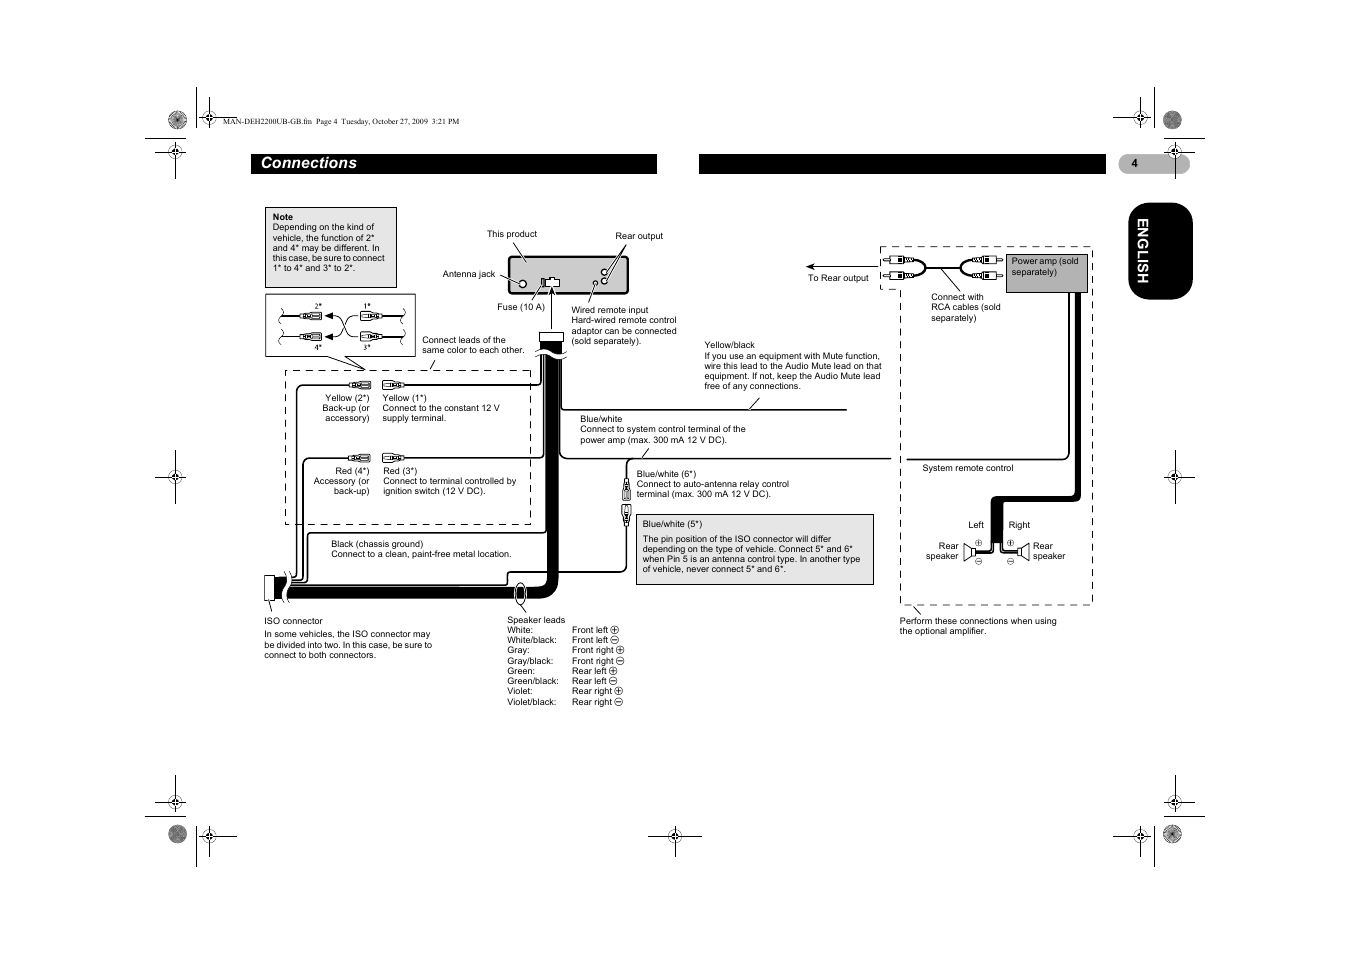 pioneer deh 6 wiring diagram with Wiring Diagram For Pioneer Deh 6400bt on Pioneer Deh 1100mp Wiring Diagram together with Pioneer Deh 6 Wiring Diagram as well Originalpart moreover Volvo 1800 Es Engine Swap Wiring Diagrams also Pioneer Deh P2600 Wiring Diagram.